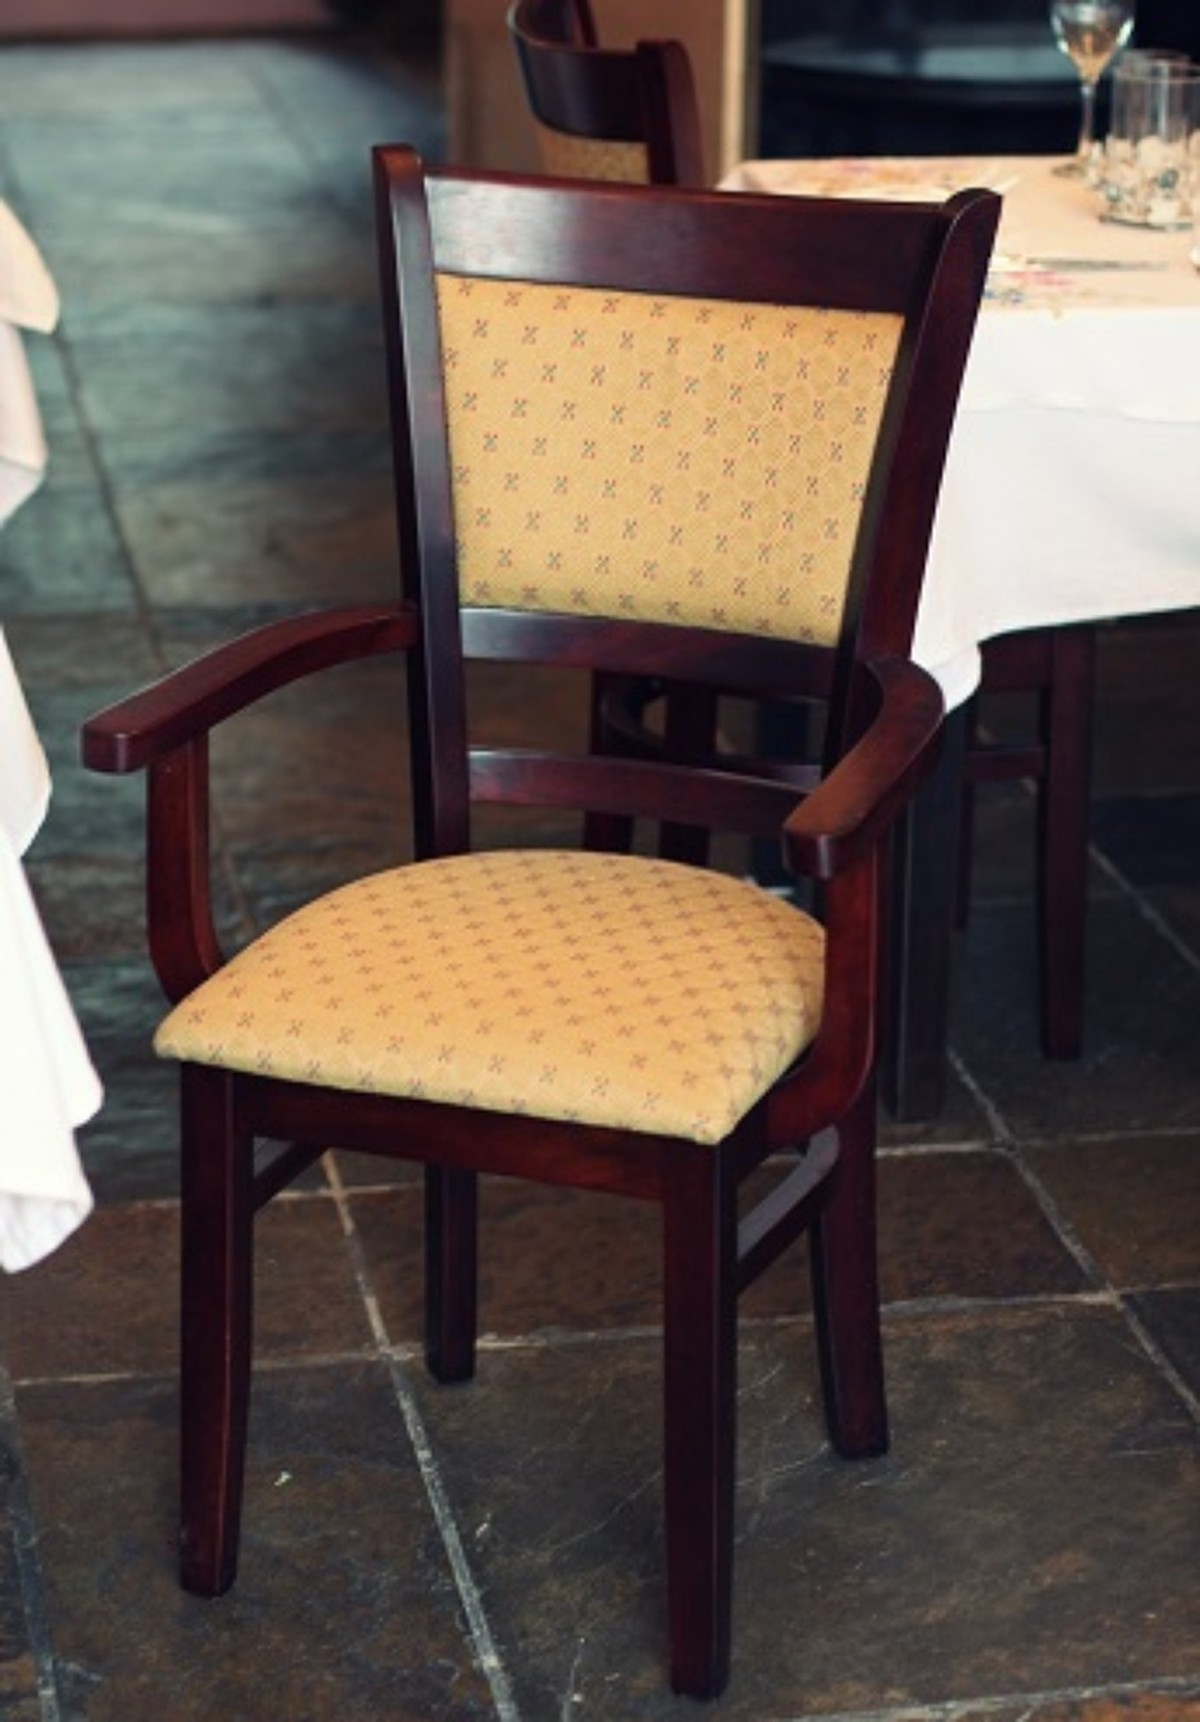 Secondhand Hotel Furniture Dining Chairs 40x Boxed New